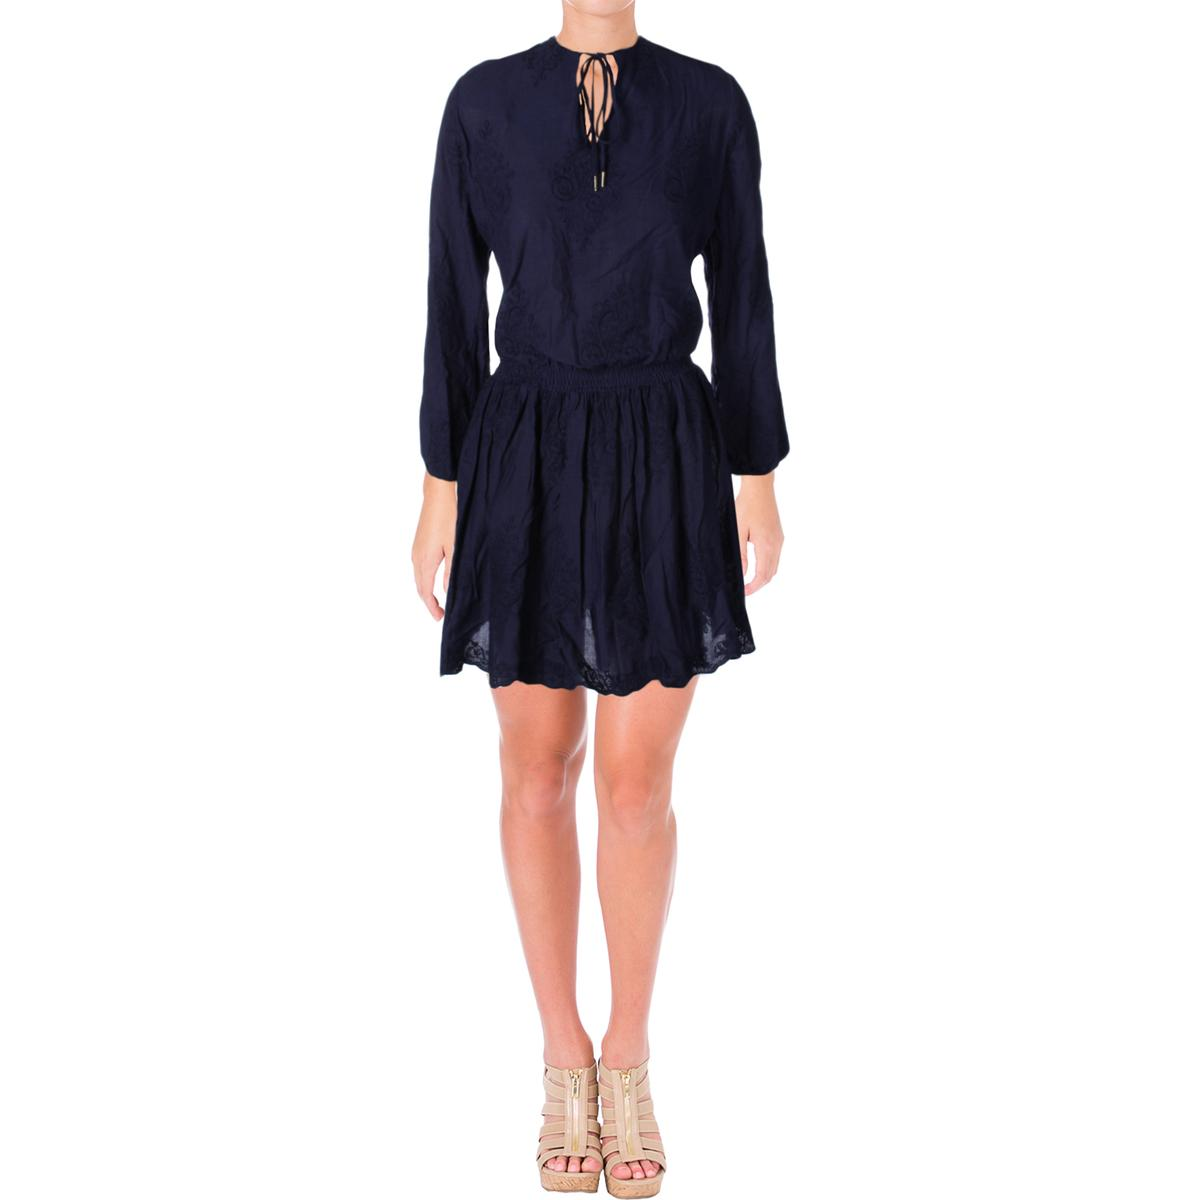 Tommy-Hilfiger-Womens-Embroidered-Peasant-Knee-Length-Casual-Dress-BHFO-0848